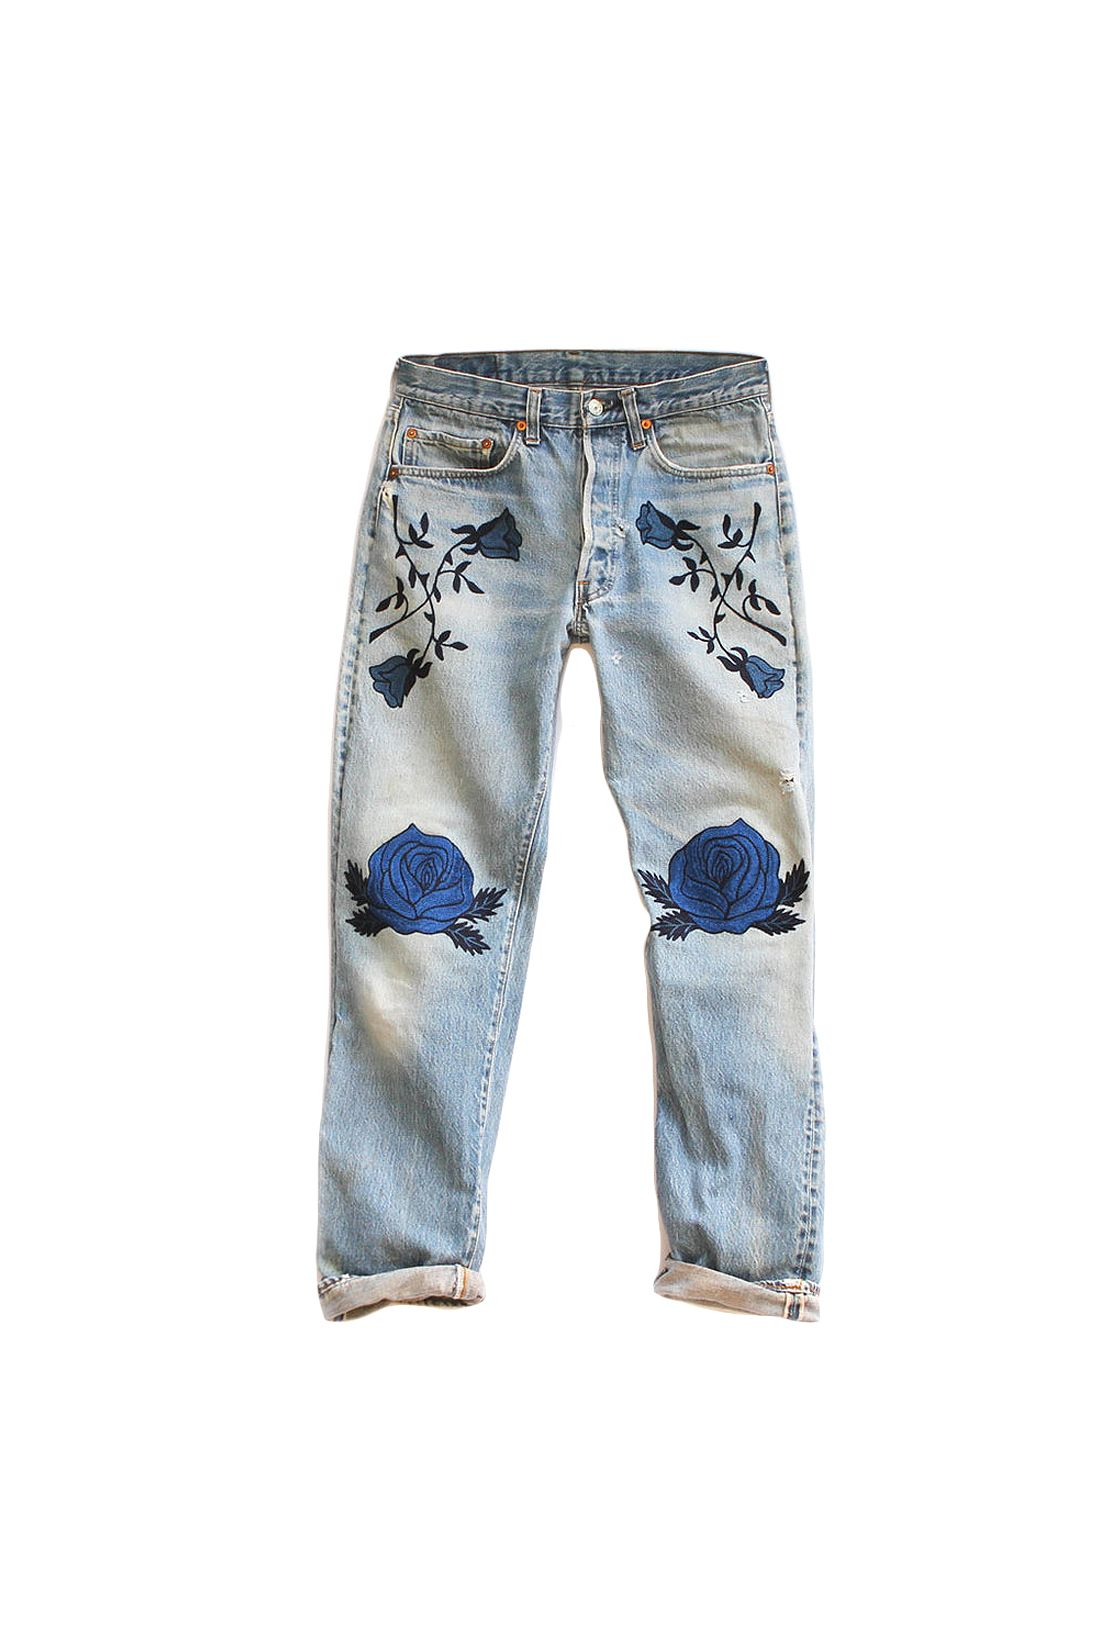 Buy the Best: Embellished Jeans - Gallery - Style.com